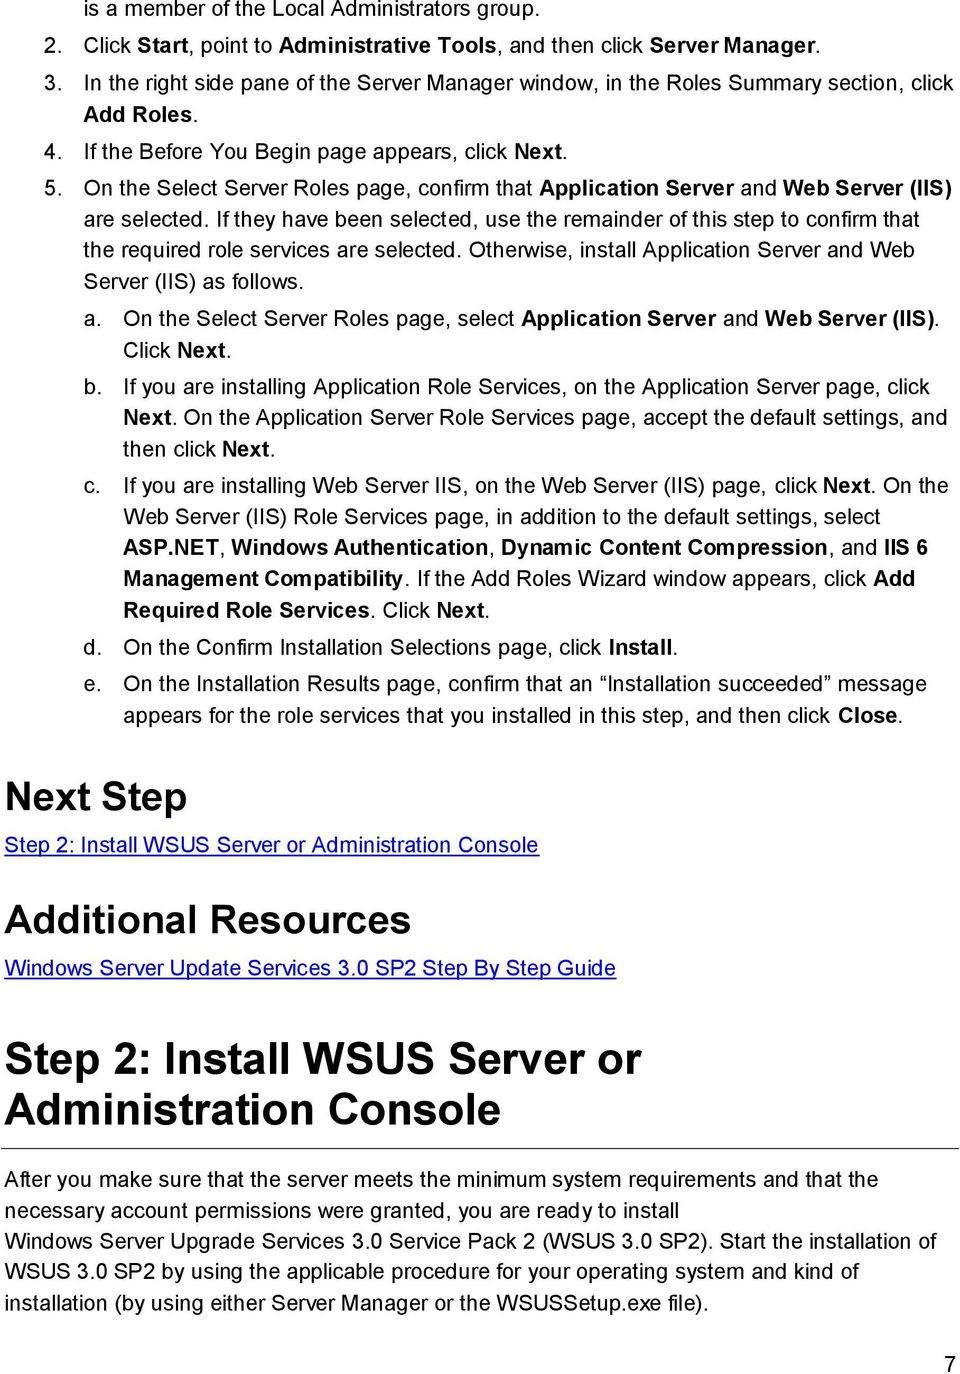 On the Select Server Roles page, confirm that Application Server and Web Server (IIS) are selected.